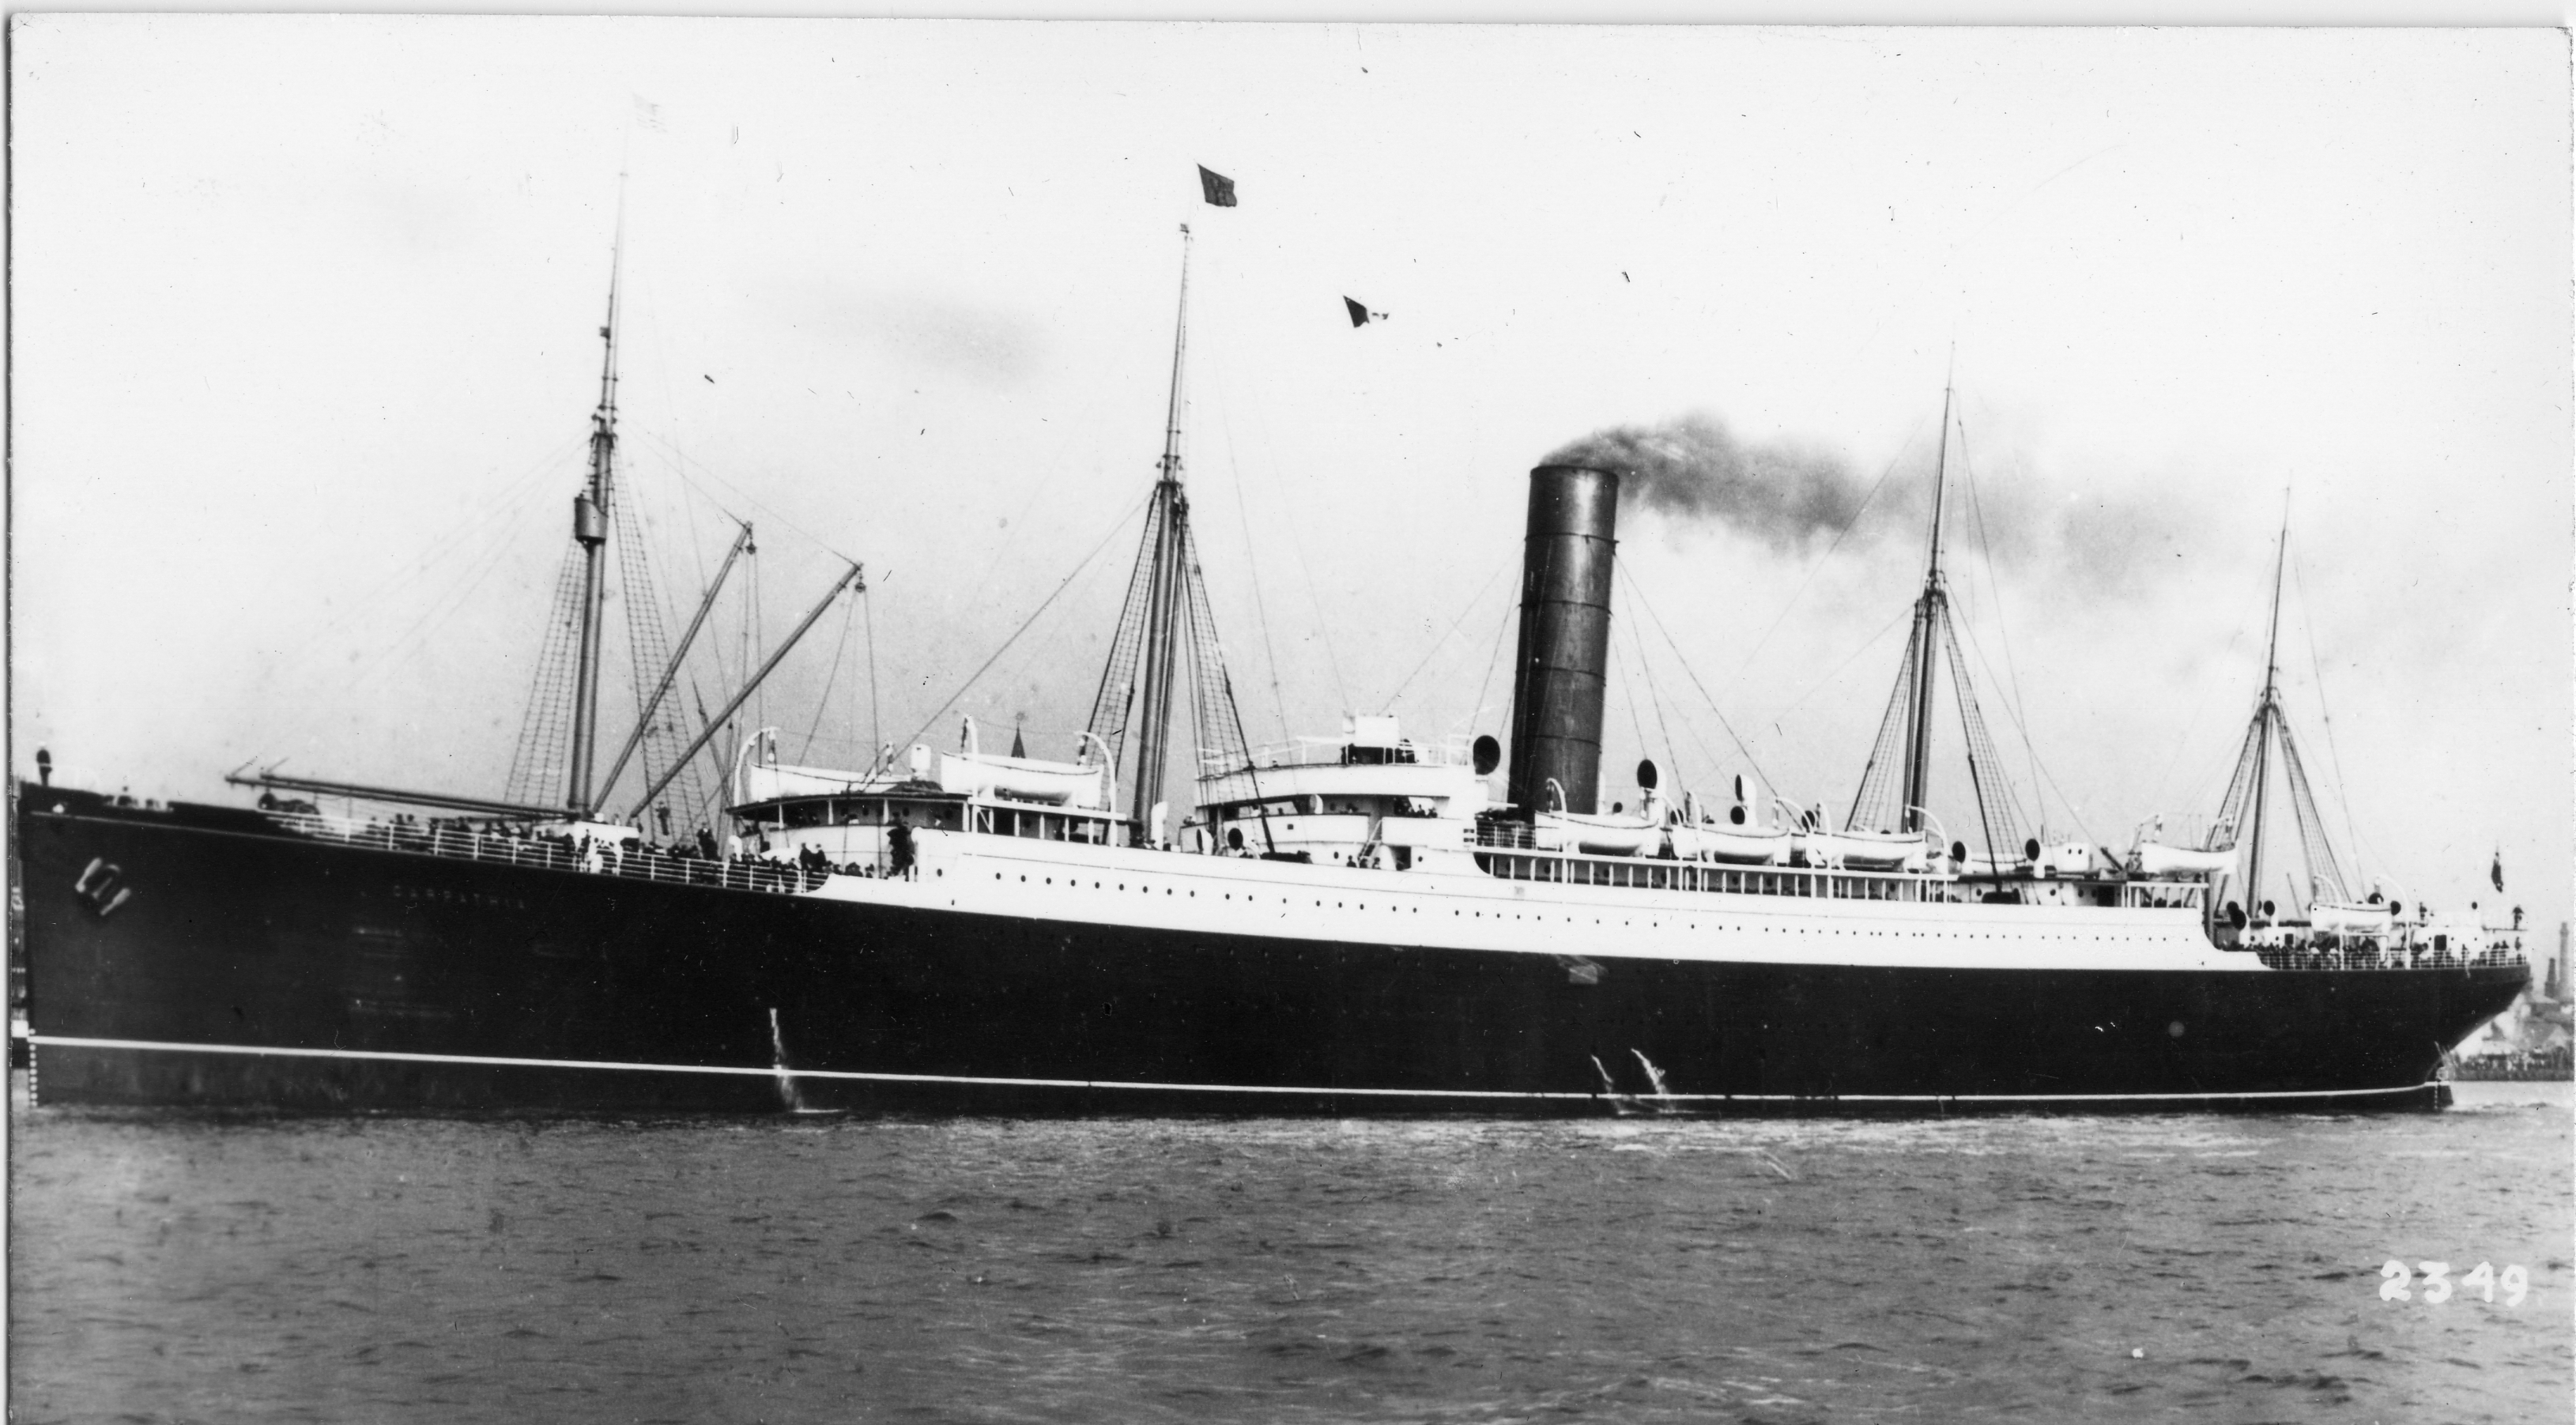 Carpathia, the ship that rescued the Titanic survivors